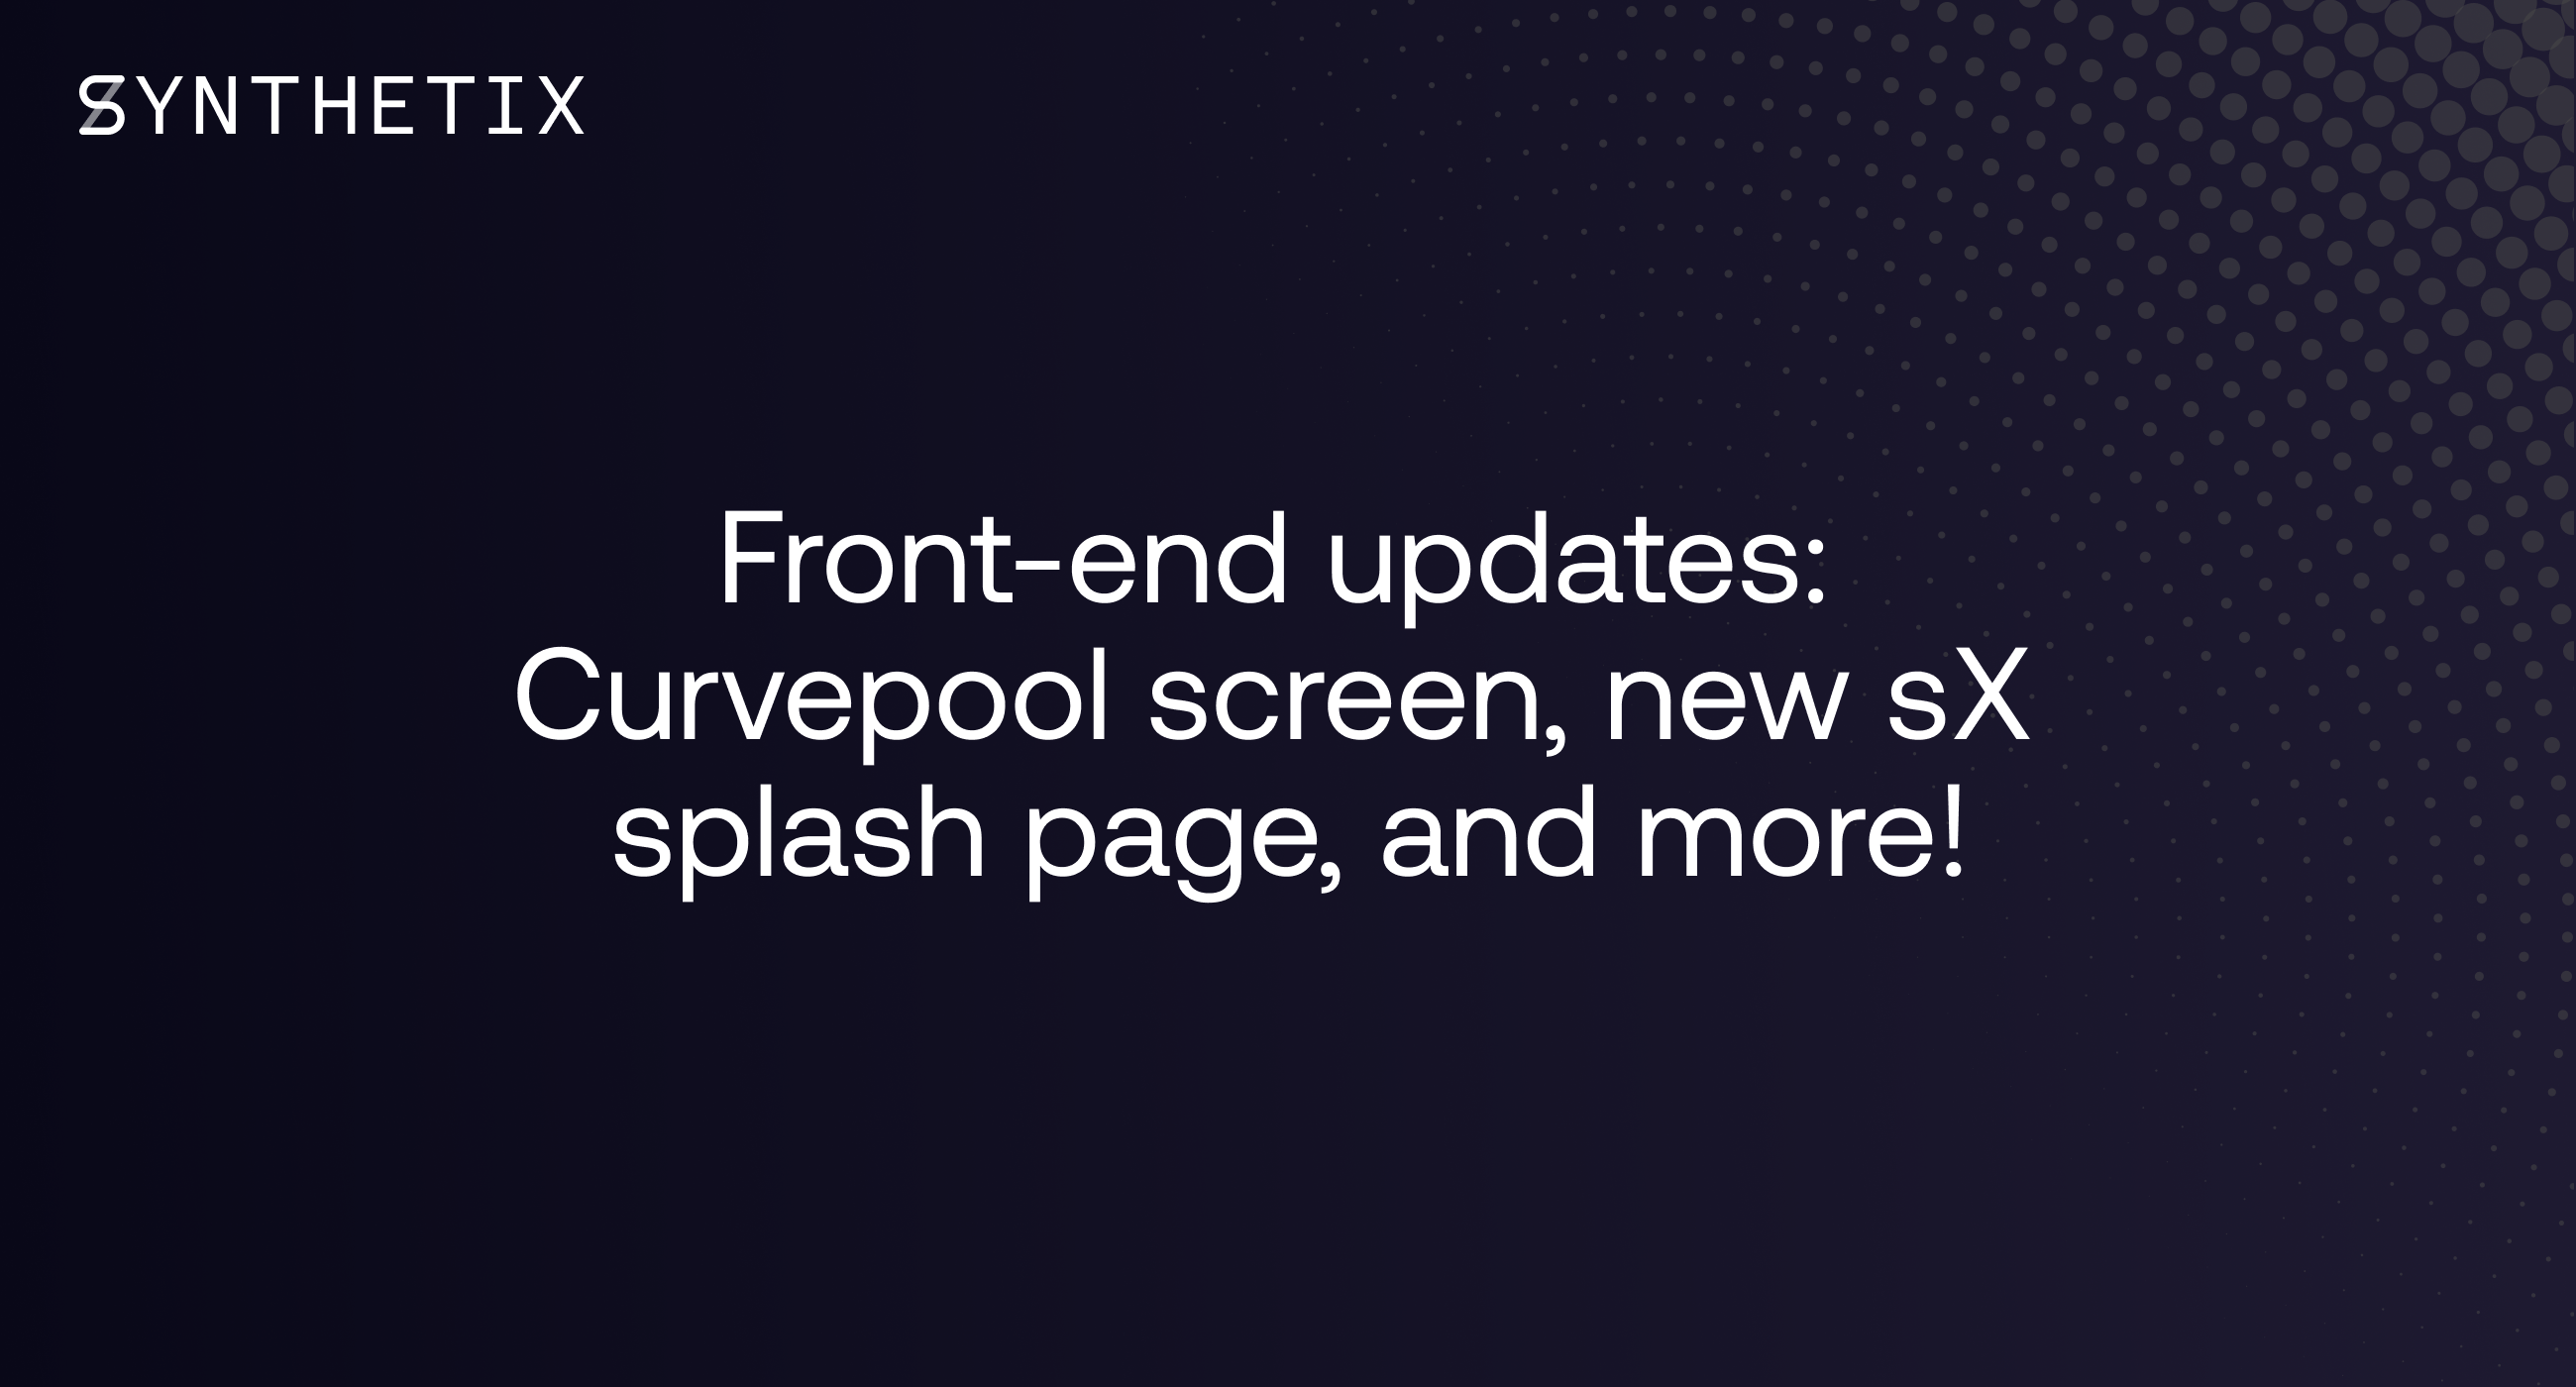 Front-end updates: Curvepool screen, new sX splash page, and more!